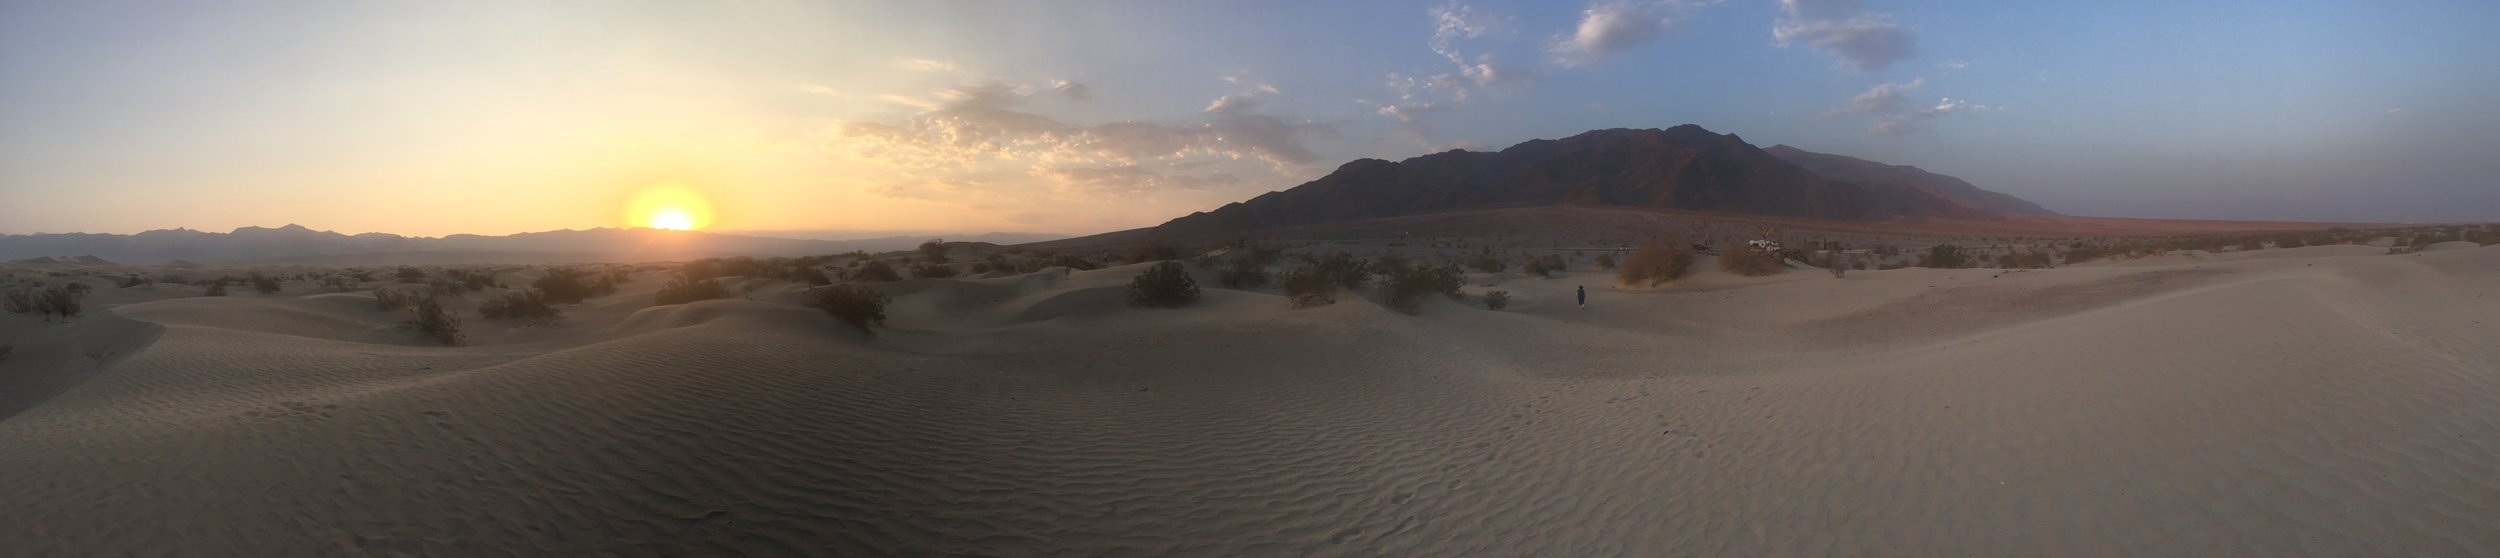 I took the above picture at sunrise last year in Death Valley National Park. You can barely make out my wife in the photo -- a tiny black speck about 1/3 of the width in from the right margin.